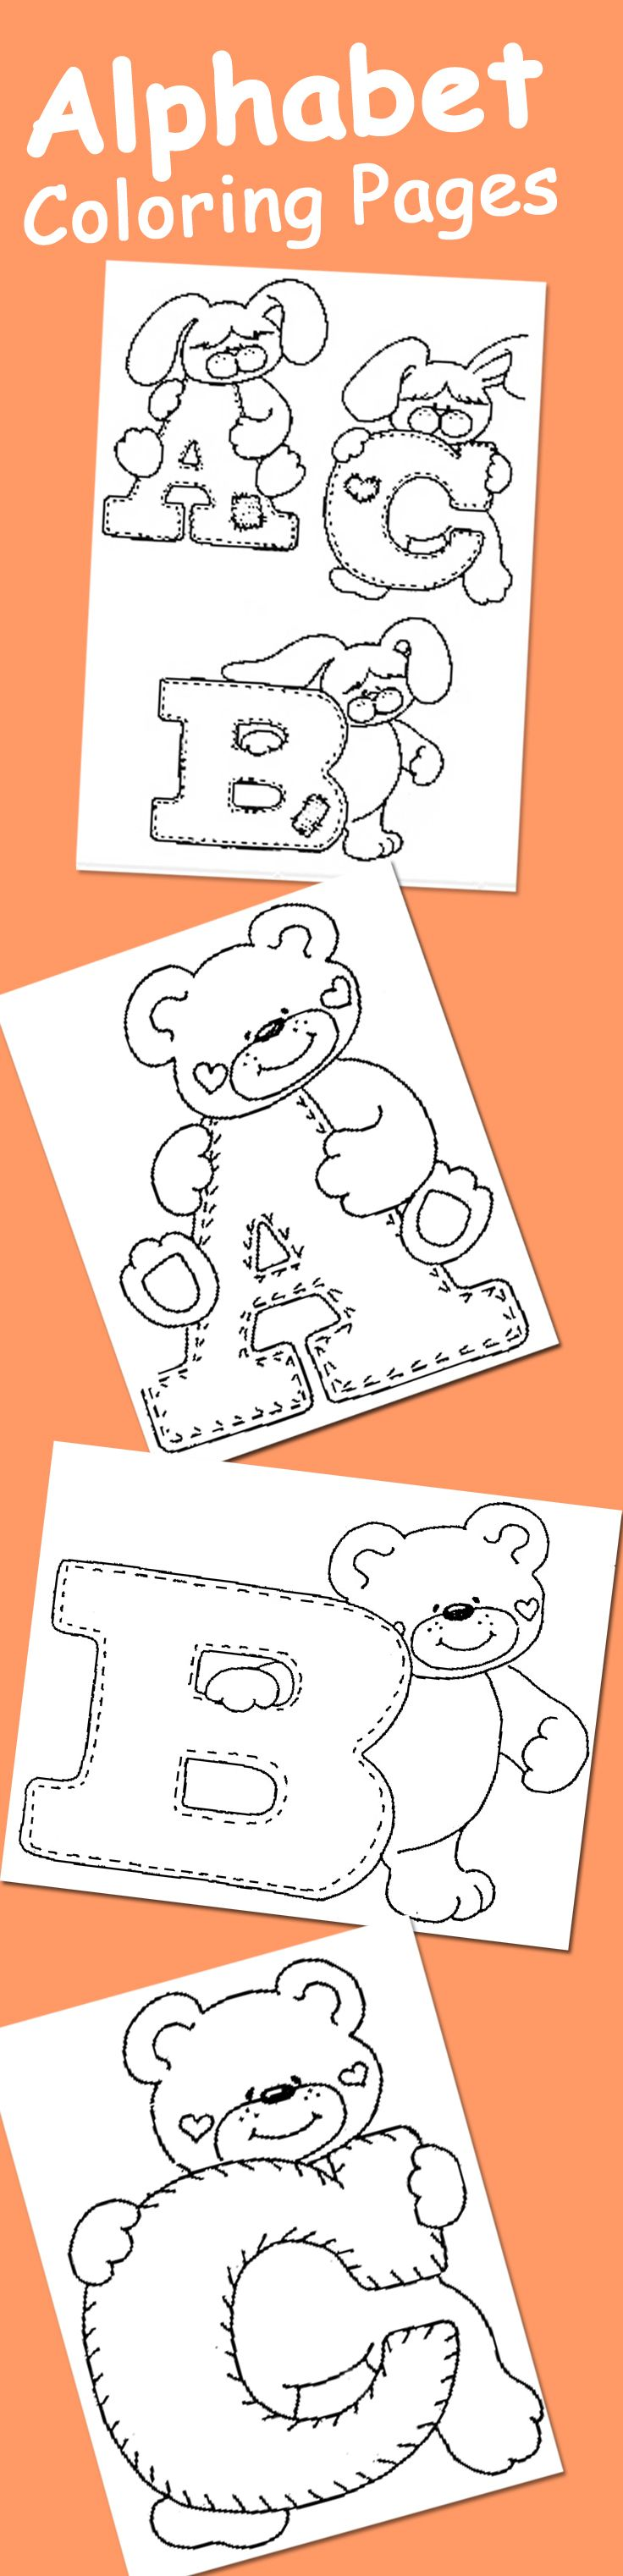 L sound coloring pages - 25 Alphabet Coloring Pages Your Toddler Will Love Here Are Our Pick Of Top 10